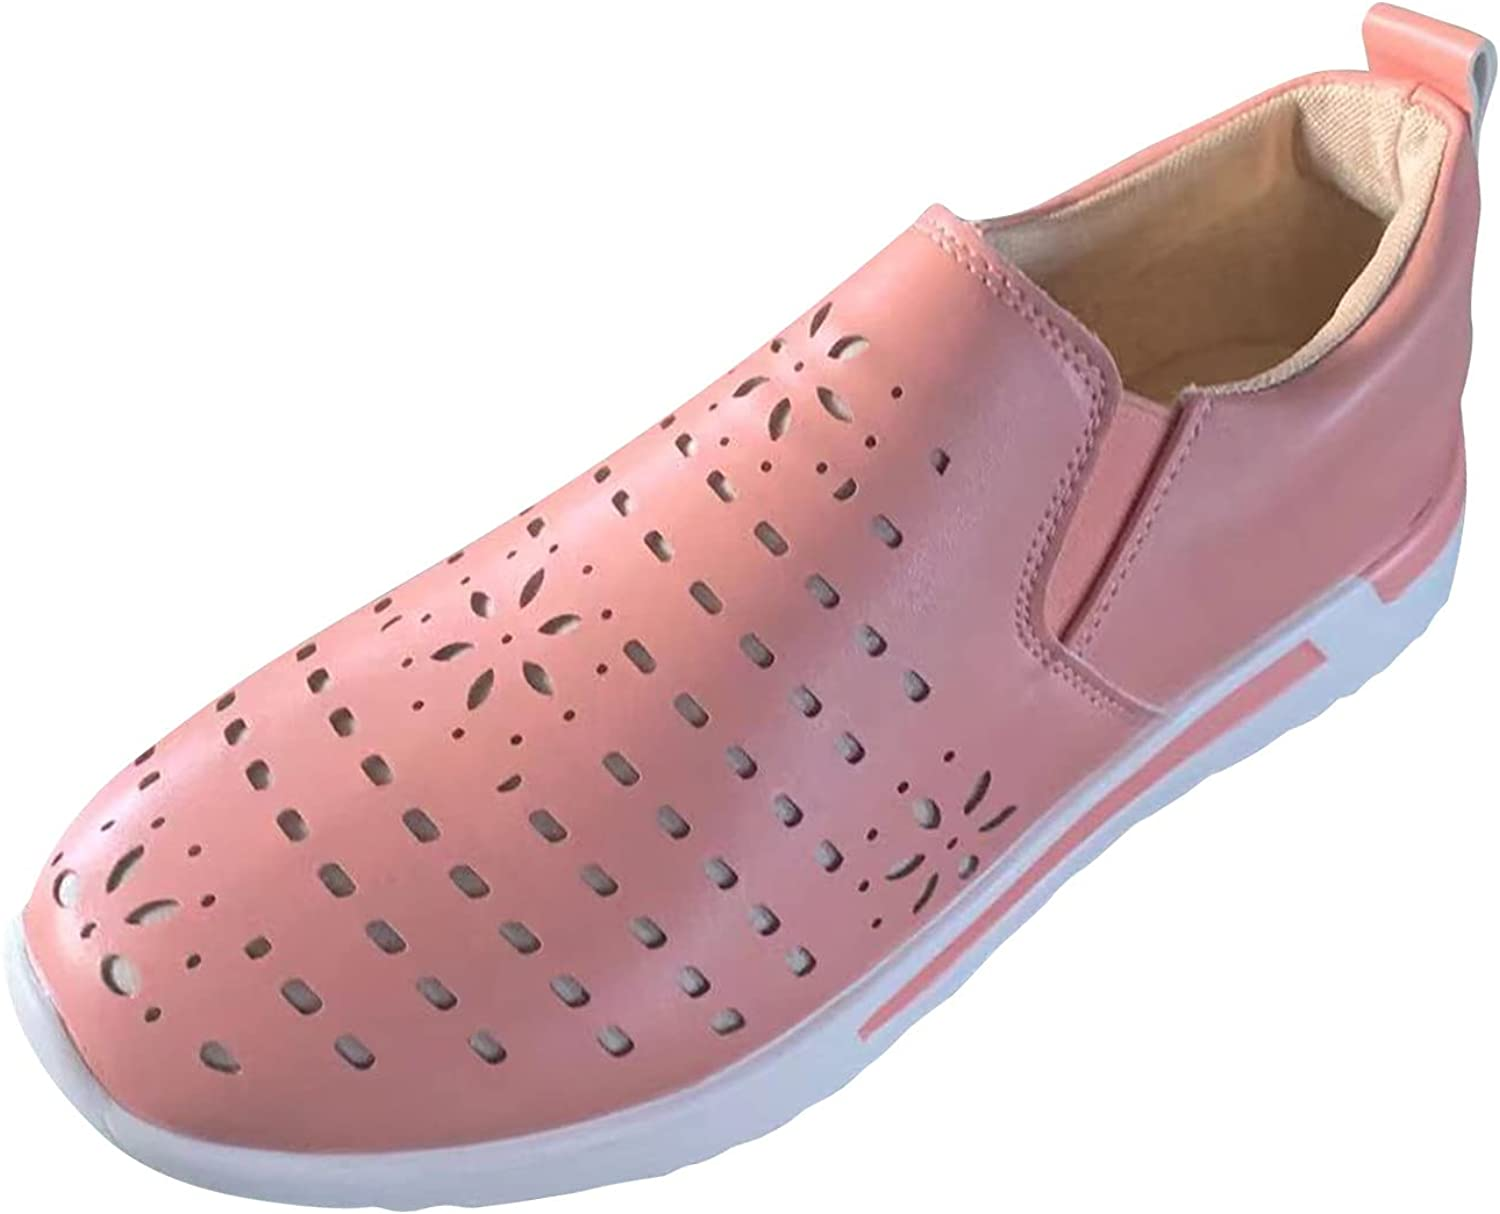 New Women Sexy Shoes Fashion Shoes For Women Mixed Colors Slip-On Womens Platform Wedges Work Shoes No-Slip Comfort Outdoor Walking Sneakers Hollow Out Pumps Single Shoes